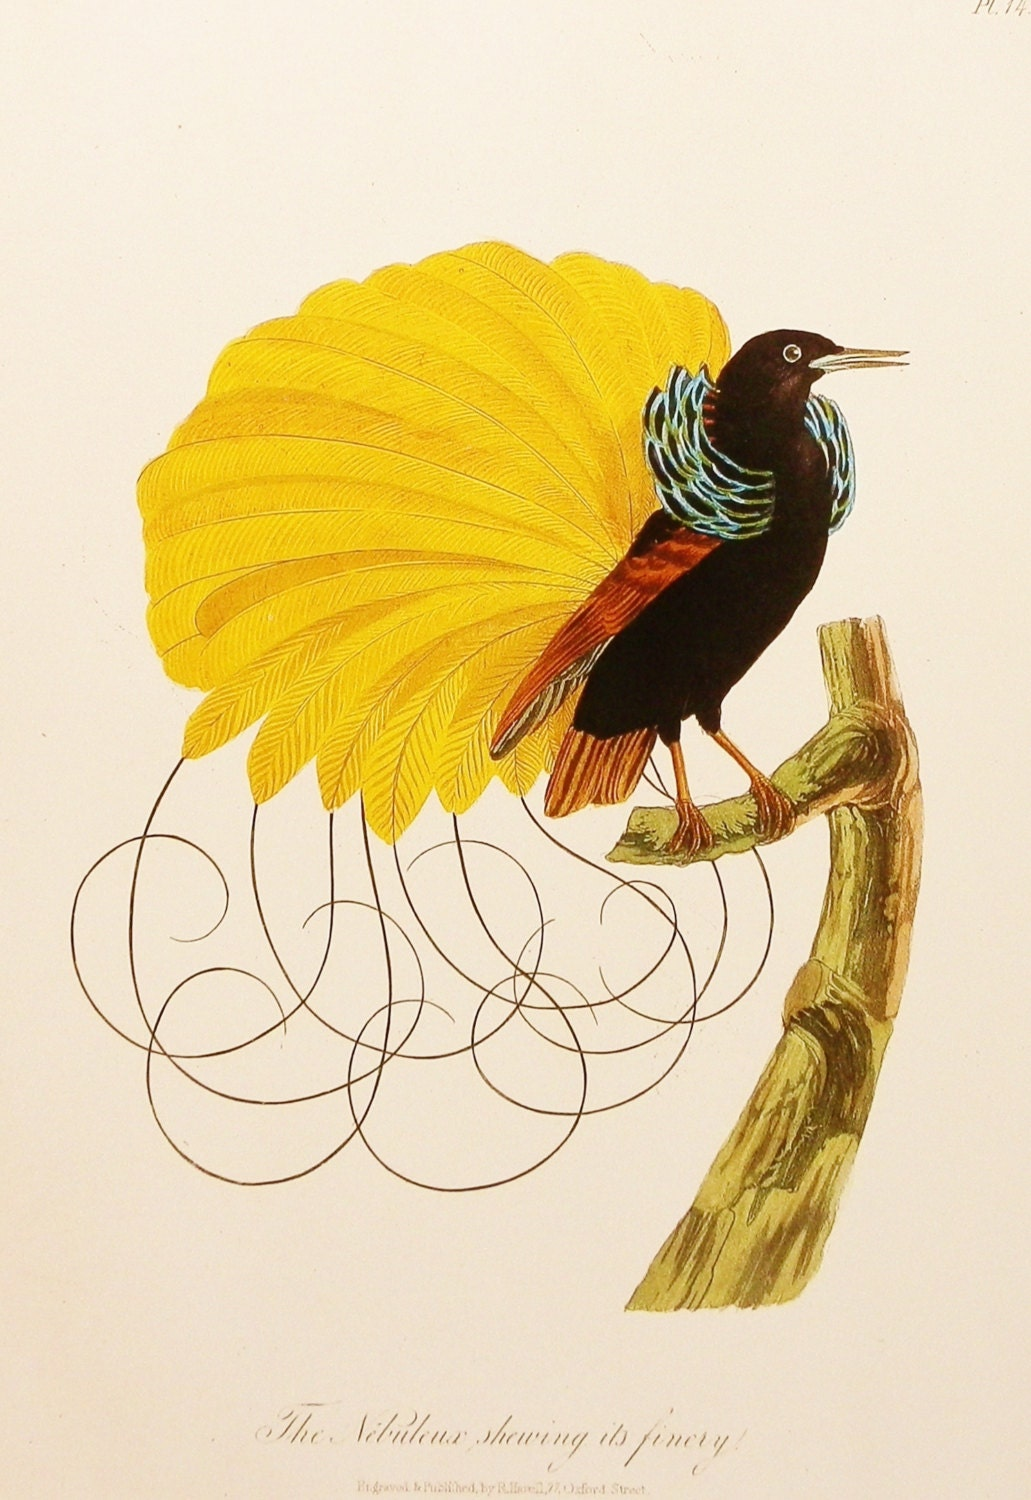 Bird Print, Bird of Paradise (Yellow Home Decor, 1800s Exotic Bird Art) No. 69 - earlybirdsale